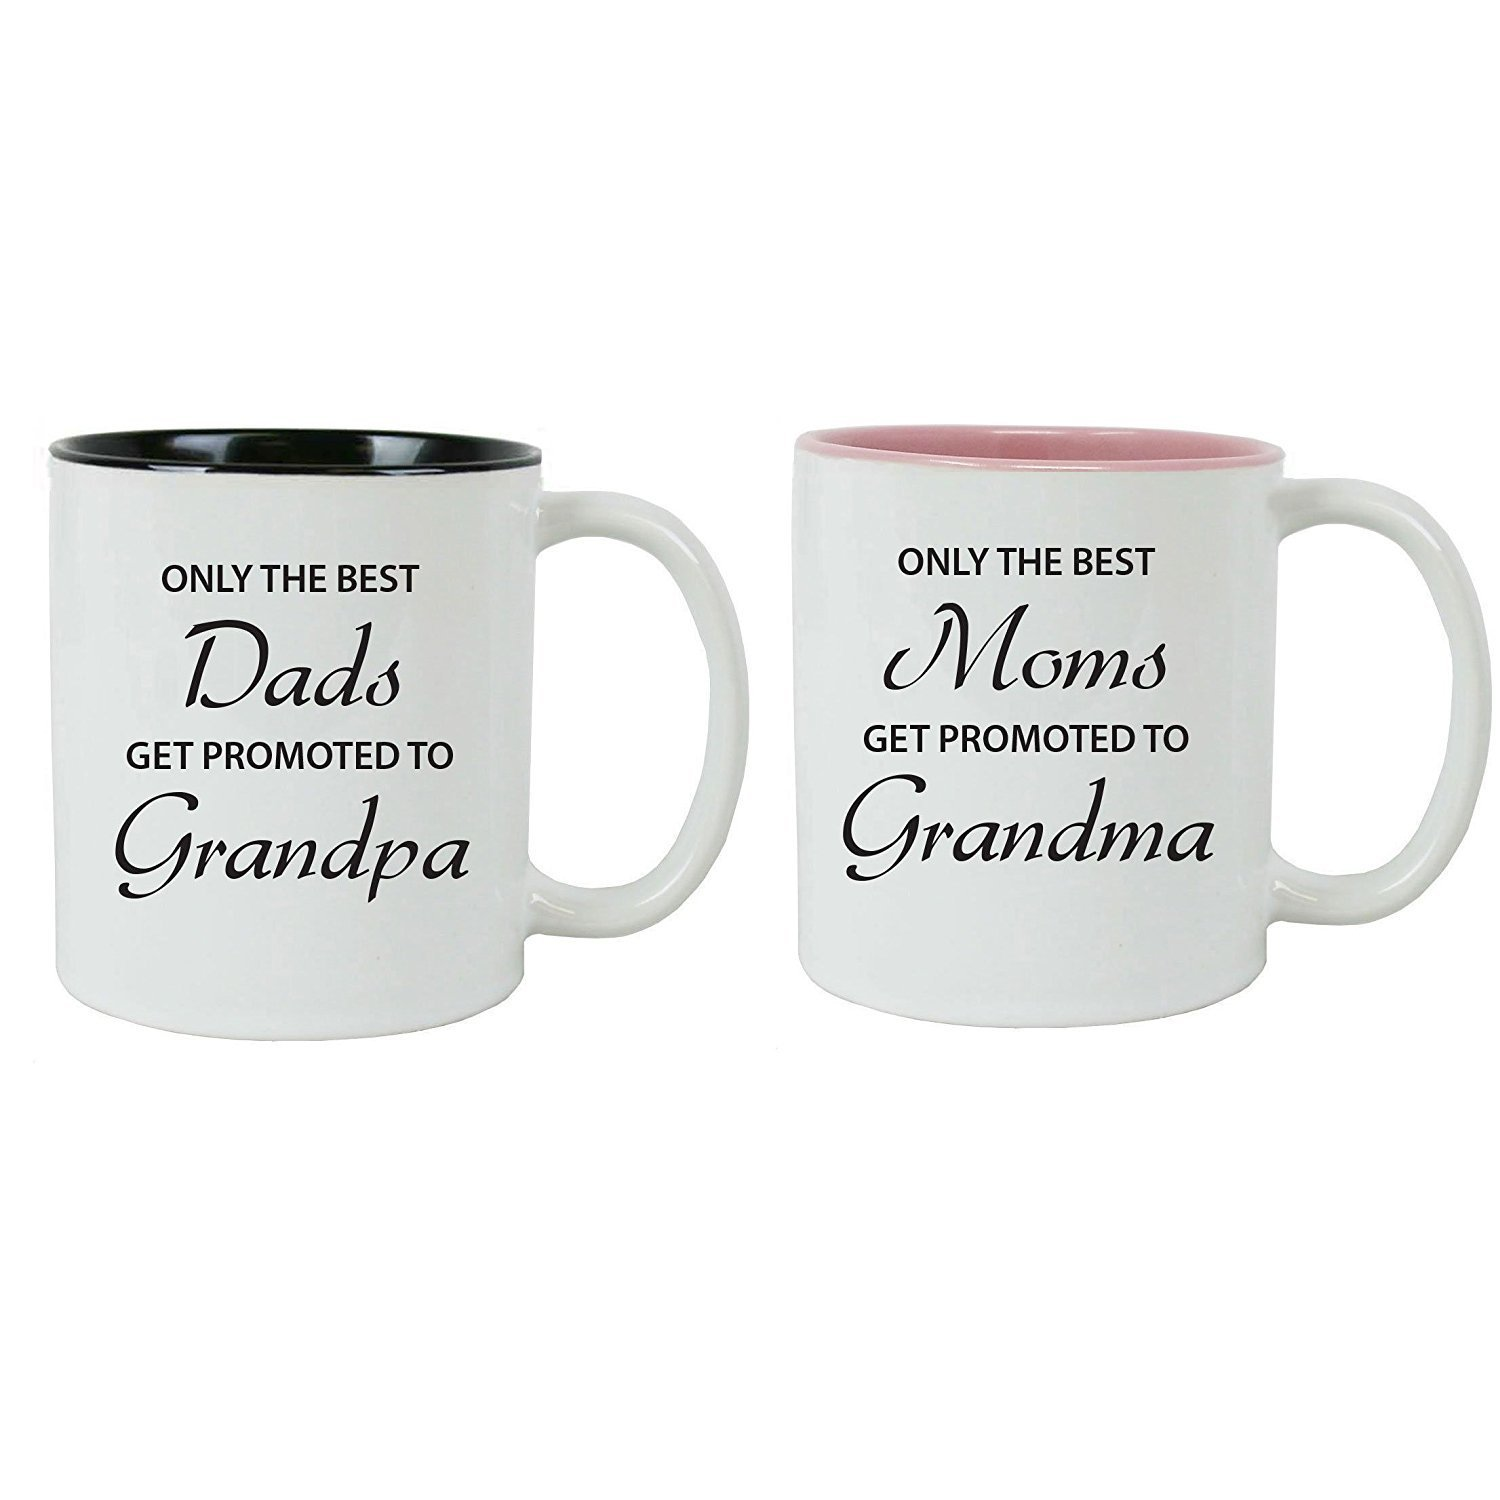 CustomGiftsNow Only the Best Dads/Moms Get Promoted to Grandparents Ceramic Coffee Mugs  Bundle